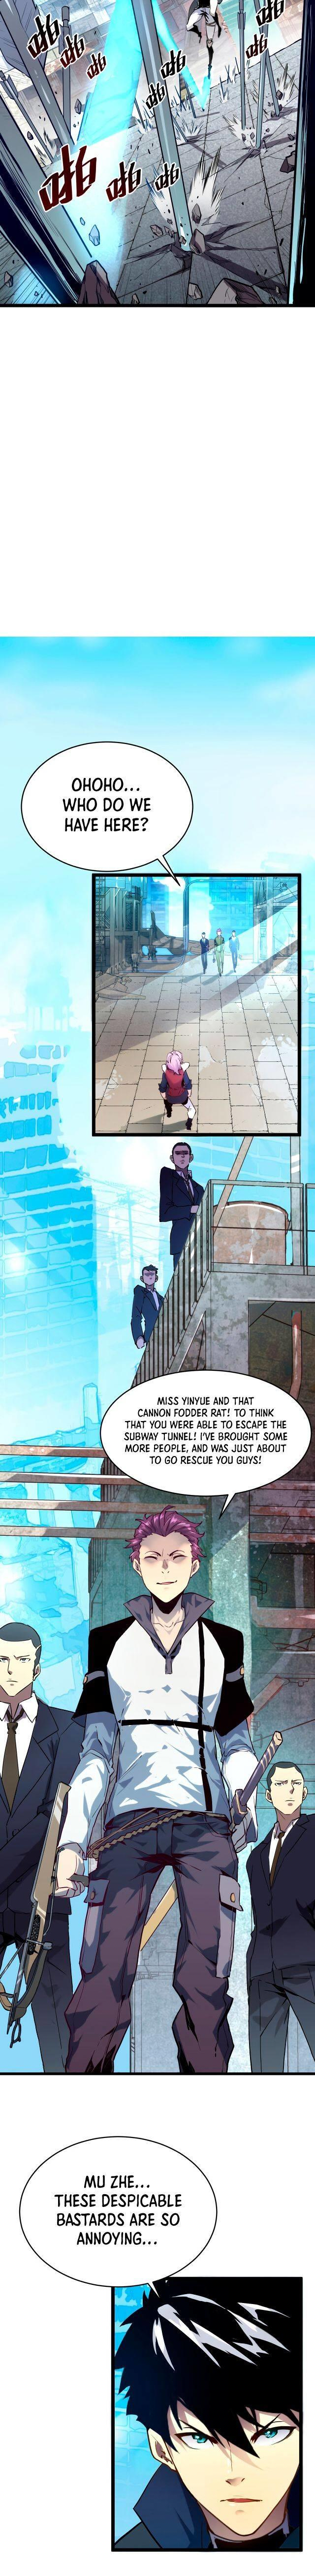 Rise From The Rubble Chapter 12 page 5 - Mangakakalots.com